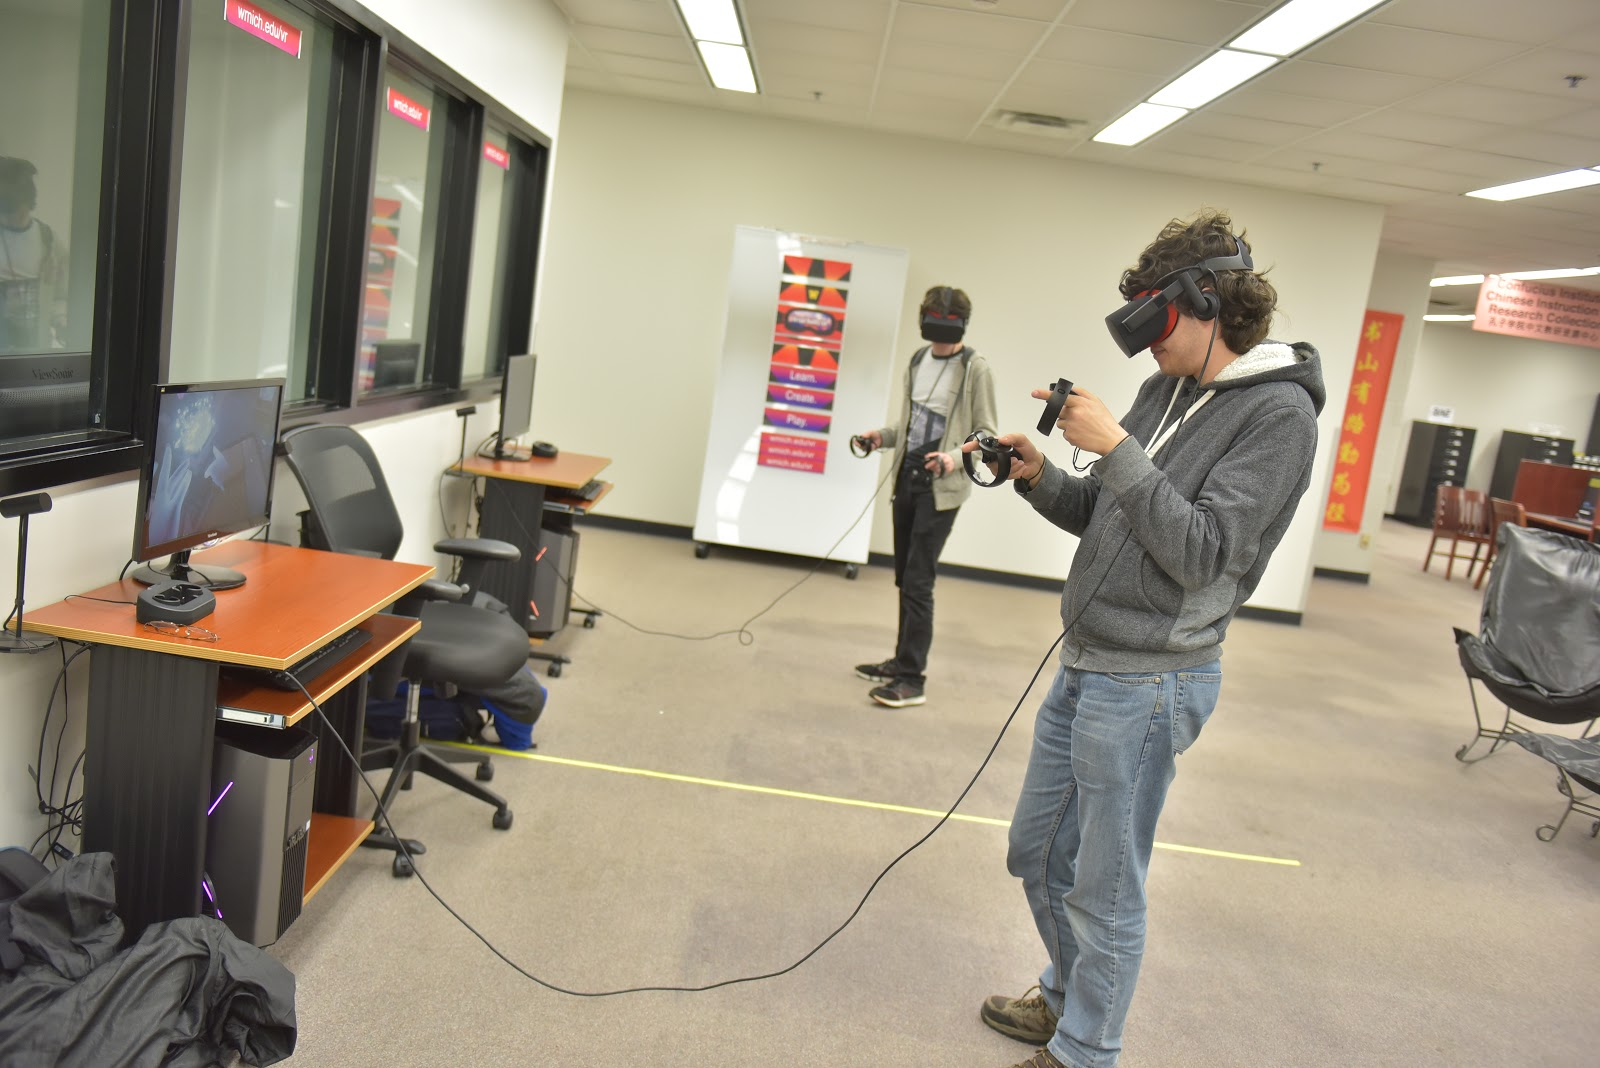 Library News: Additional Workshop added: Virtual Reality